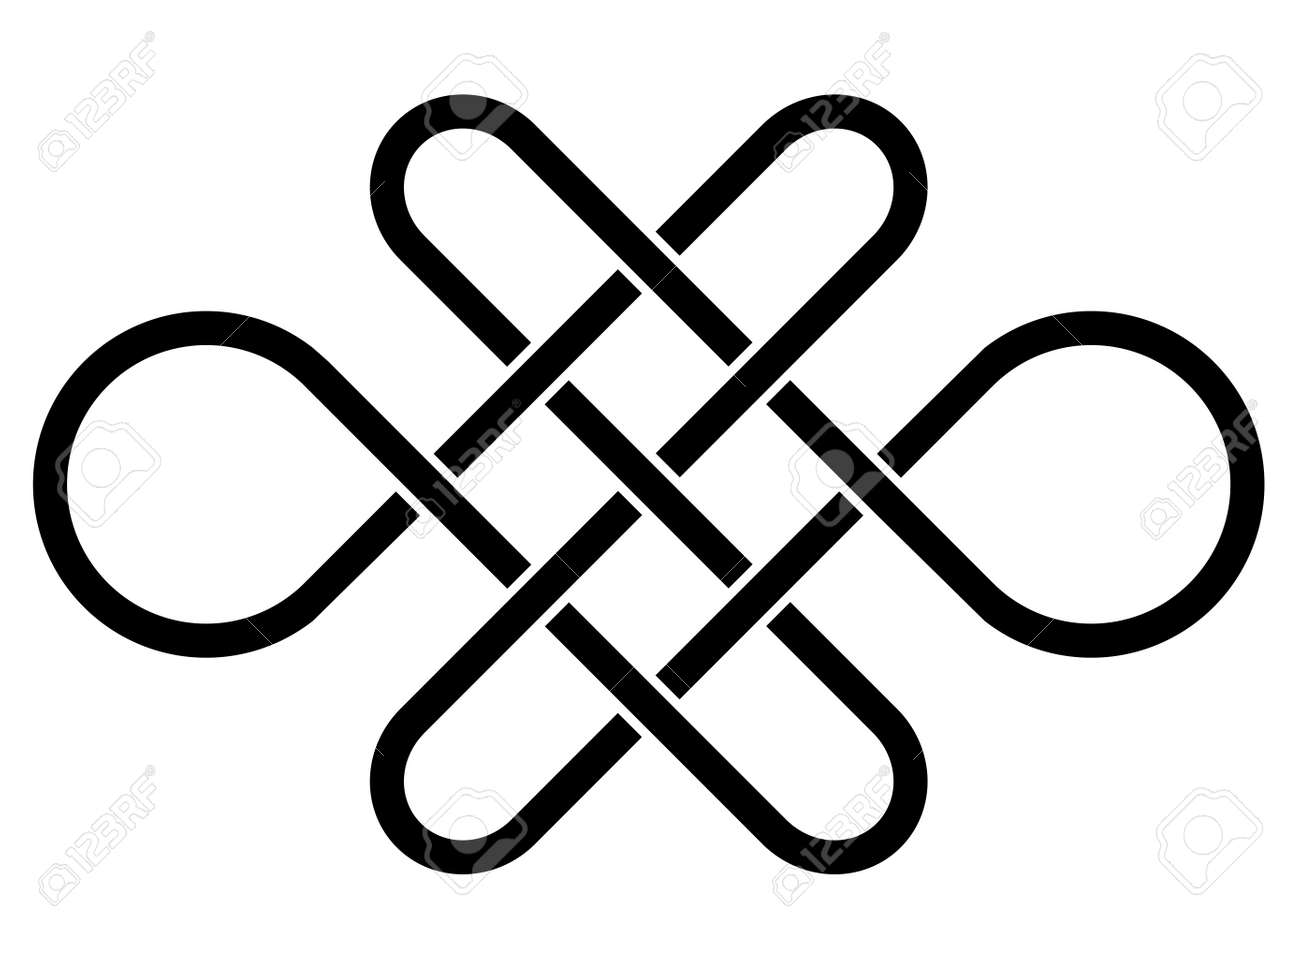 Vector endless celtic knot royalty free cliparts vectors and vector endless celtic knot buycottarizona Image collections